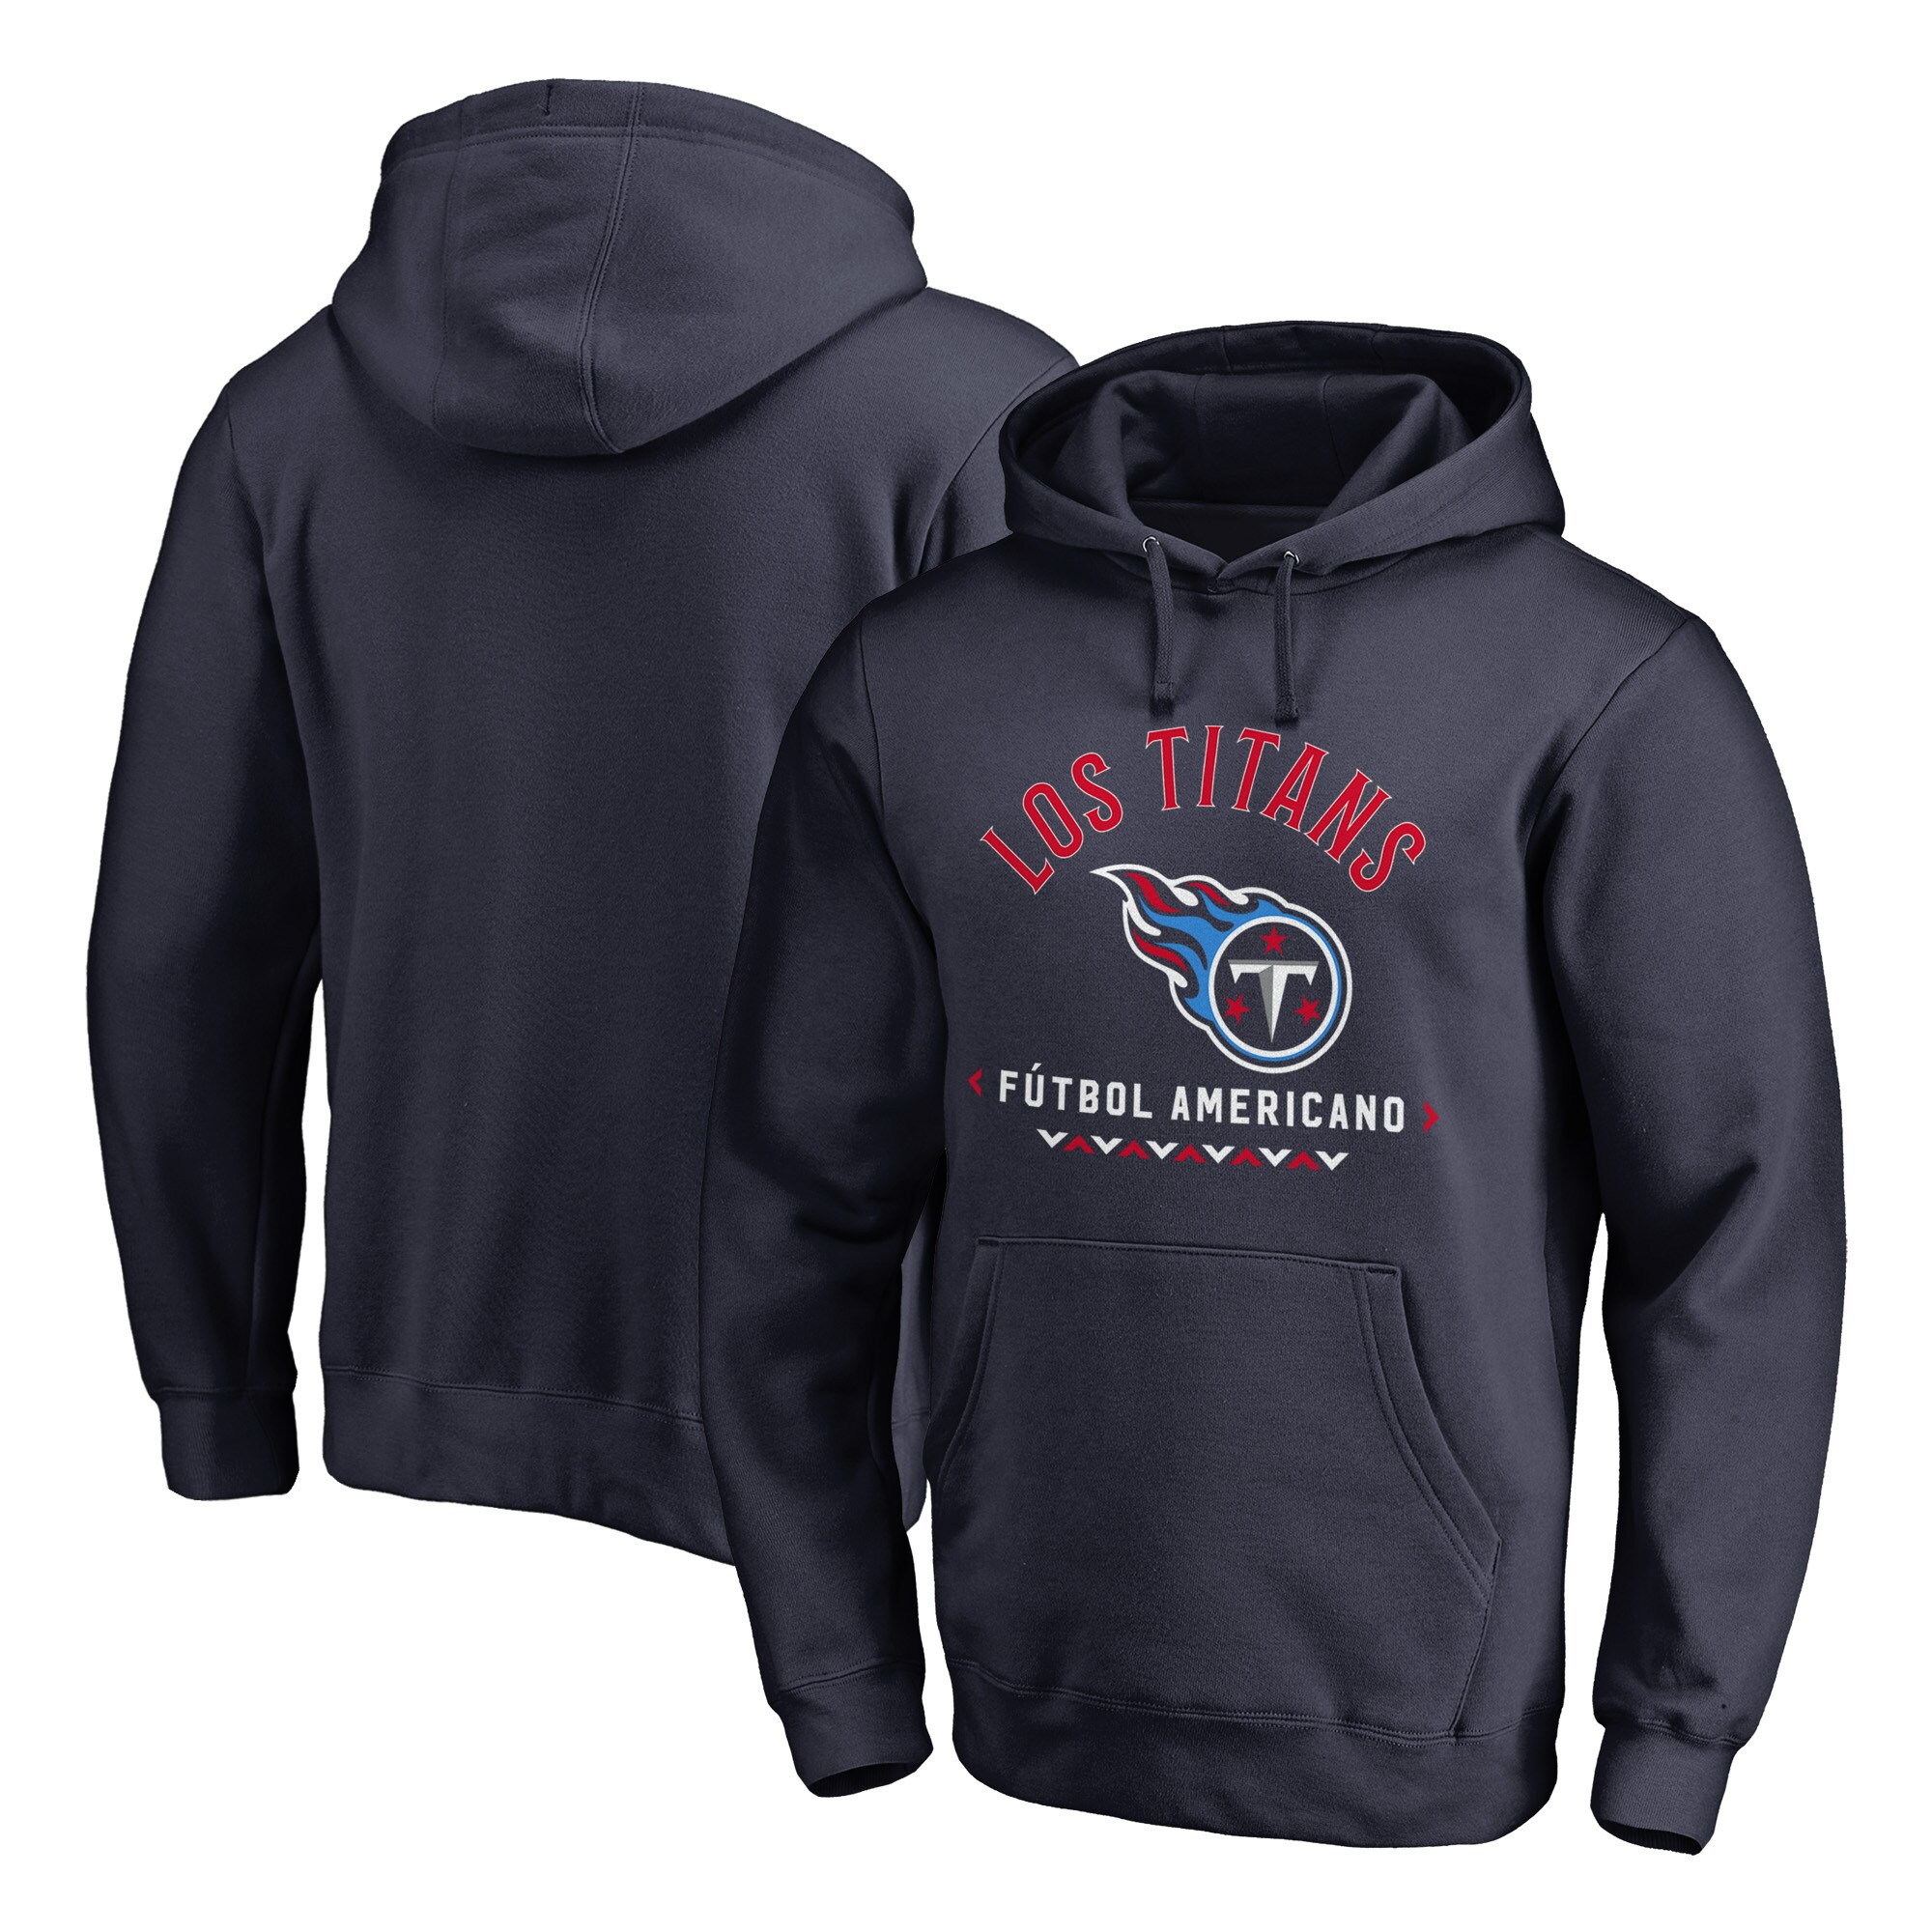 Tennessee Titans NFL Pro Line by Fanatics Branded Futbol Americano Pullover Hoodie - Navy